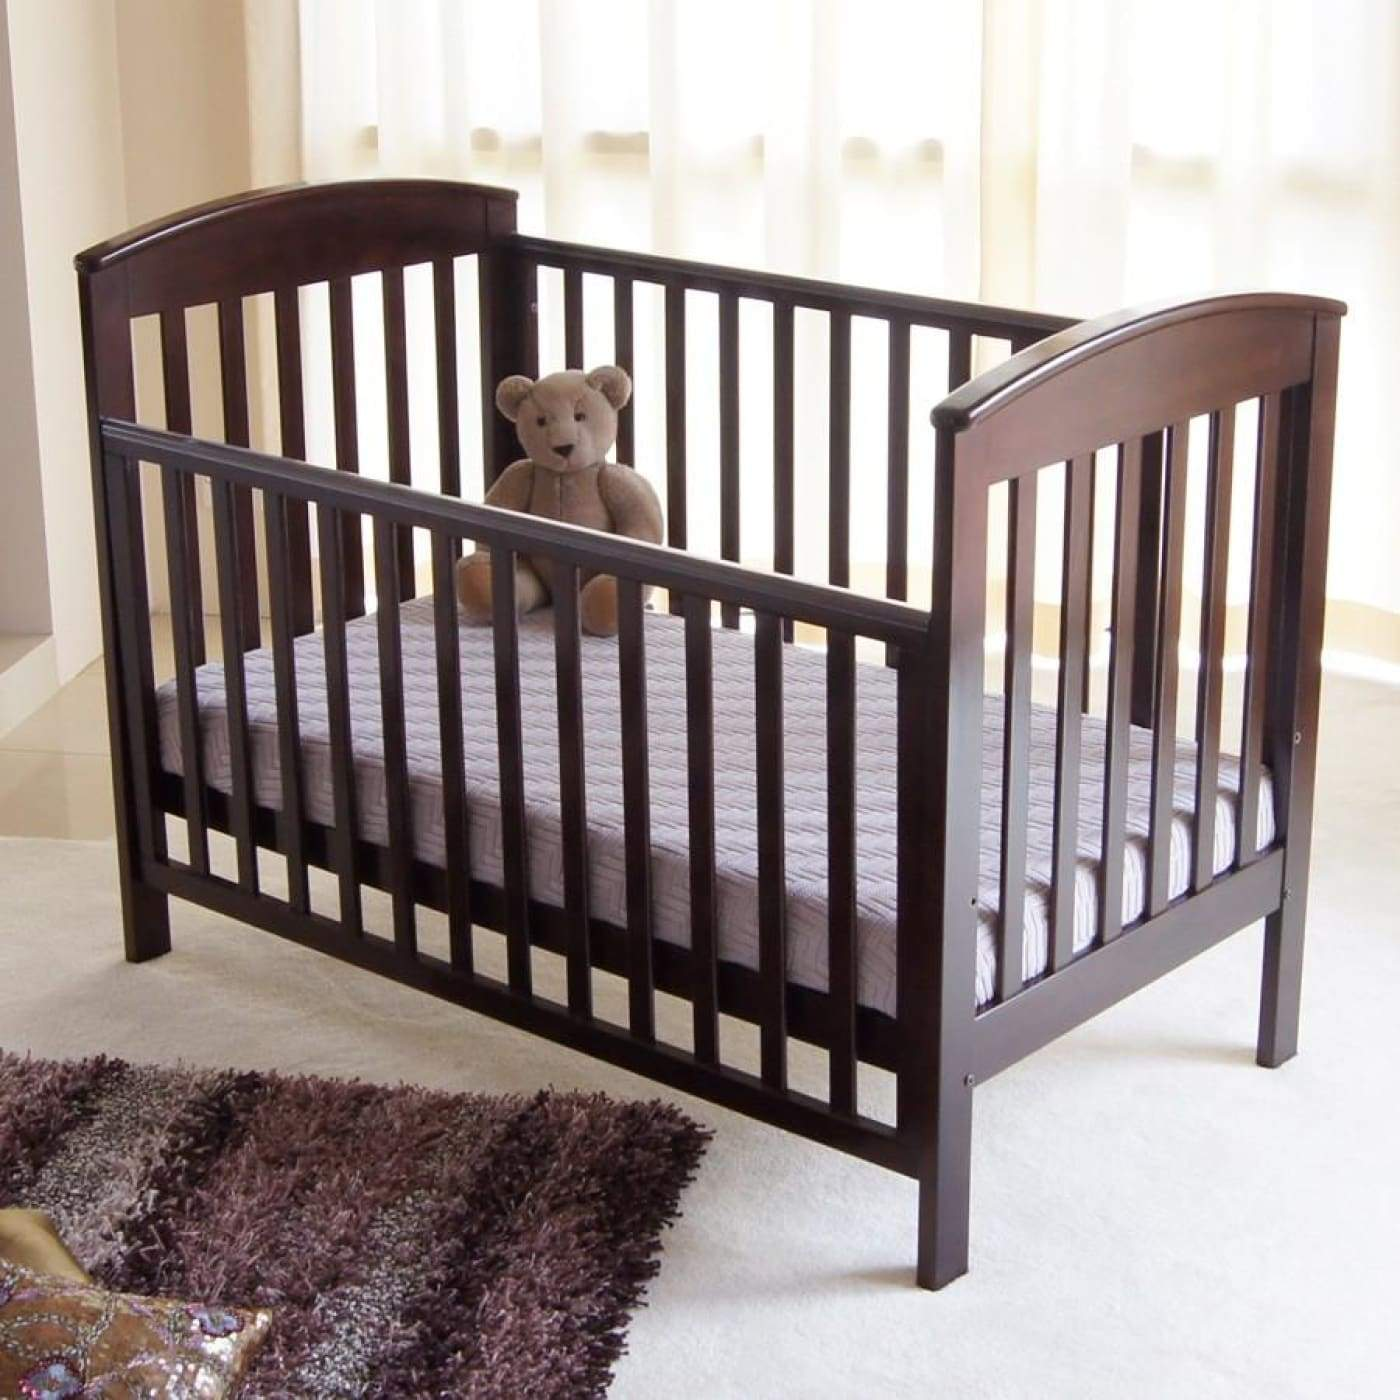 Babyhood Classic Curve Cot - English Oak - NURSERY & BEDTIME - COTS